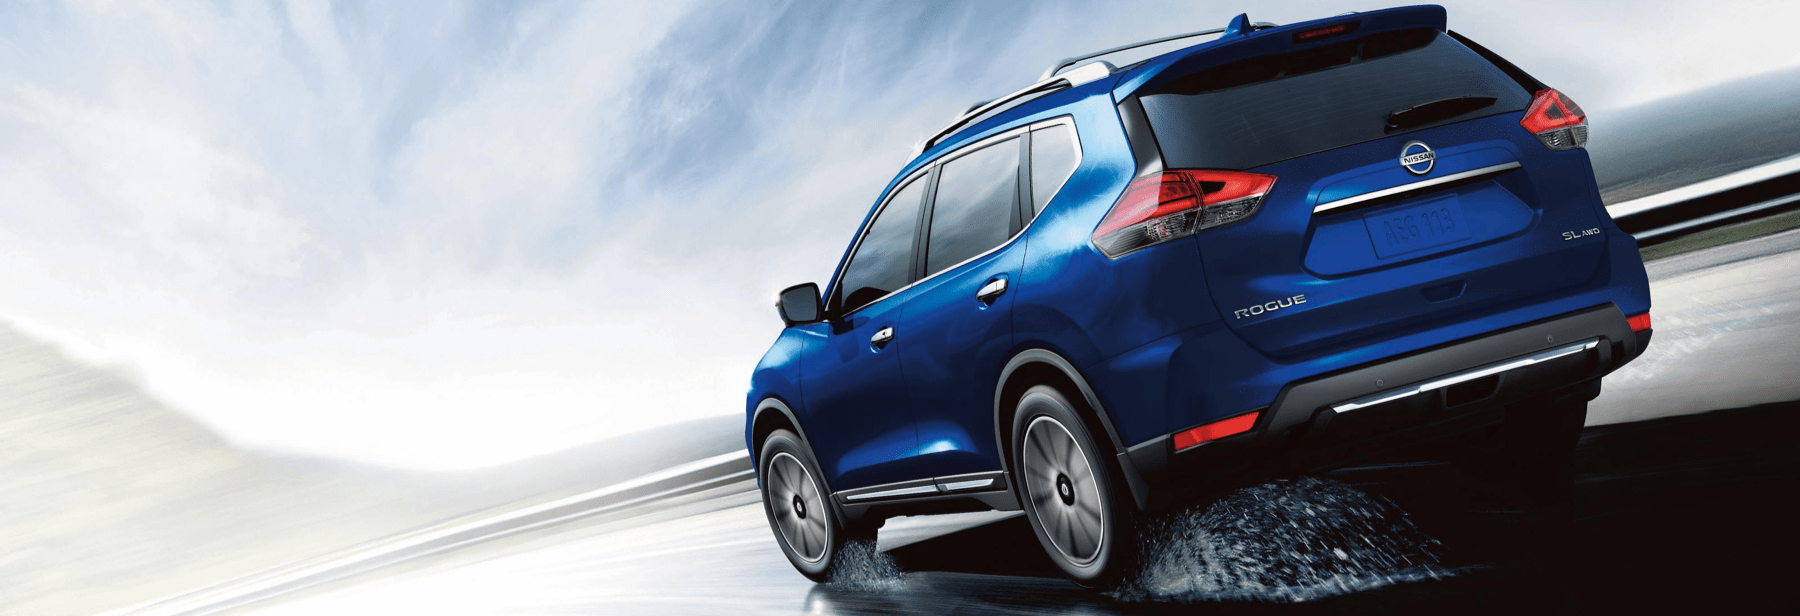 2020 Blue Rogue drives on highway road